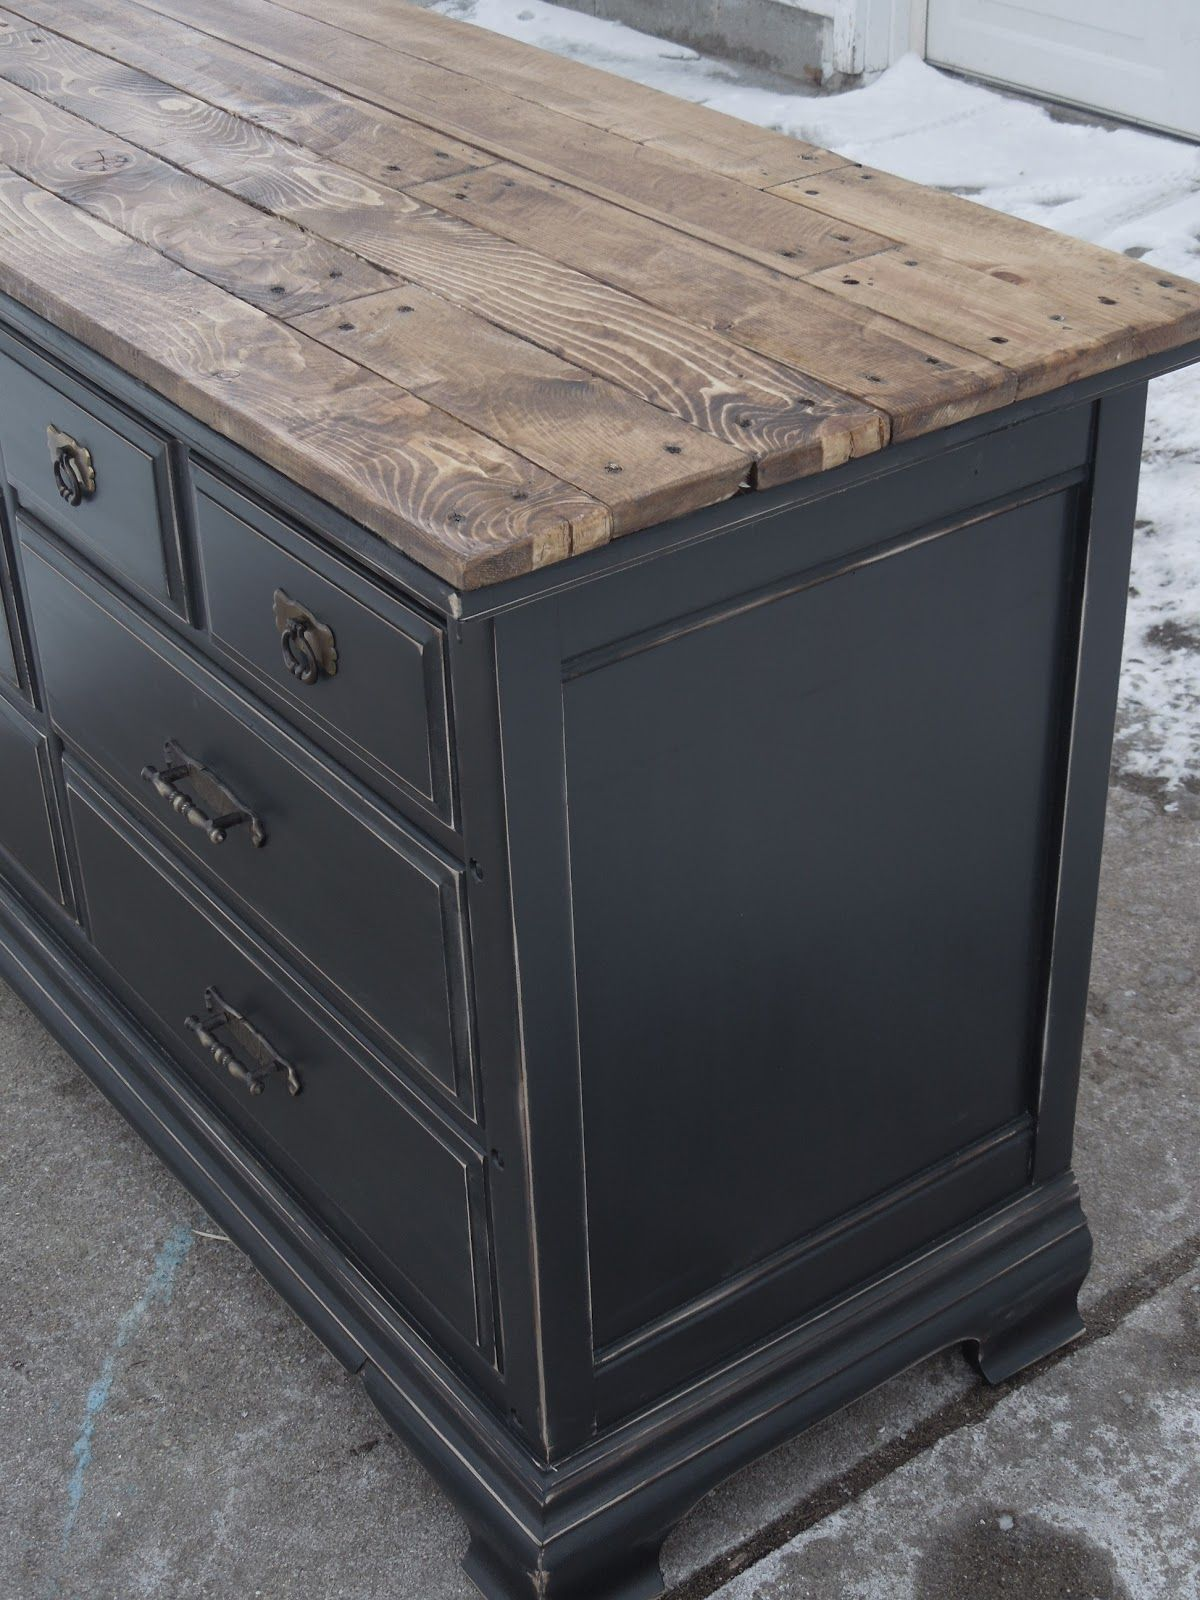 Painting furniture black distressed - Beautiful Dresser Painted Black And Lightly Distressed Stained Wood Planked Top The Dresser